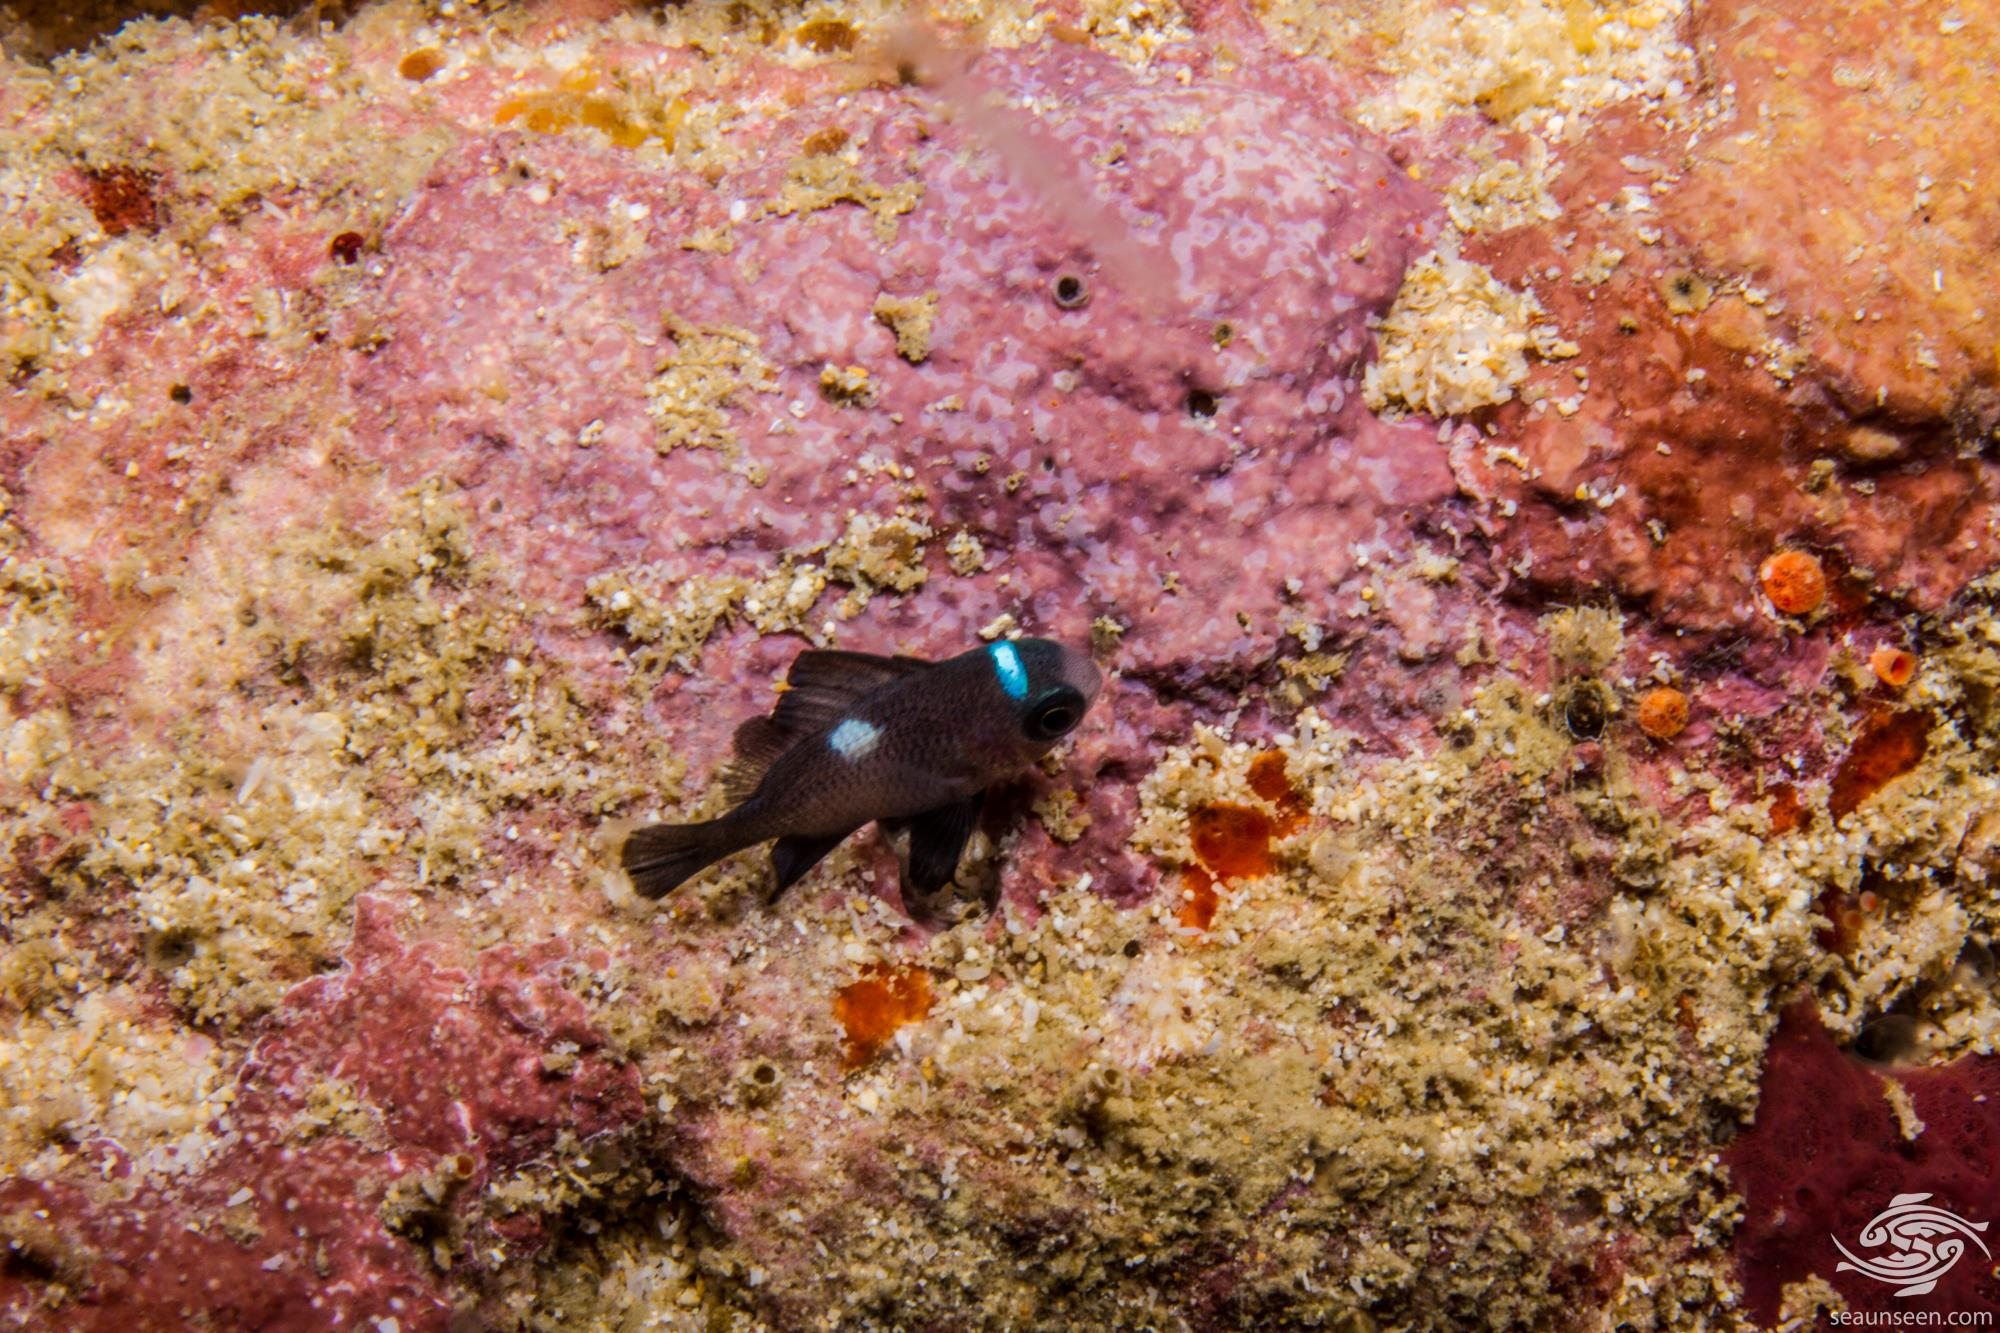 Domino Damselfish, Dascyllus trimaculatus is also known as the Three Spot Dascyllus